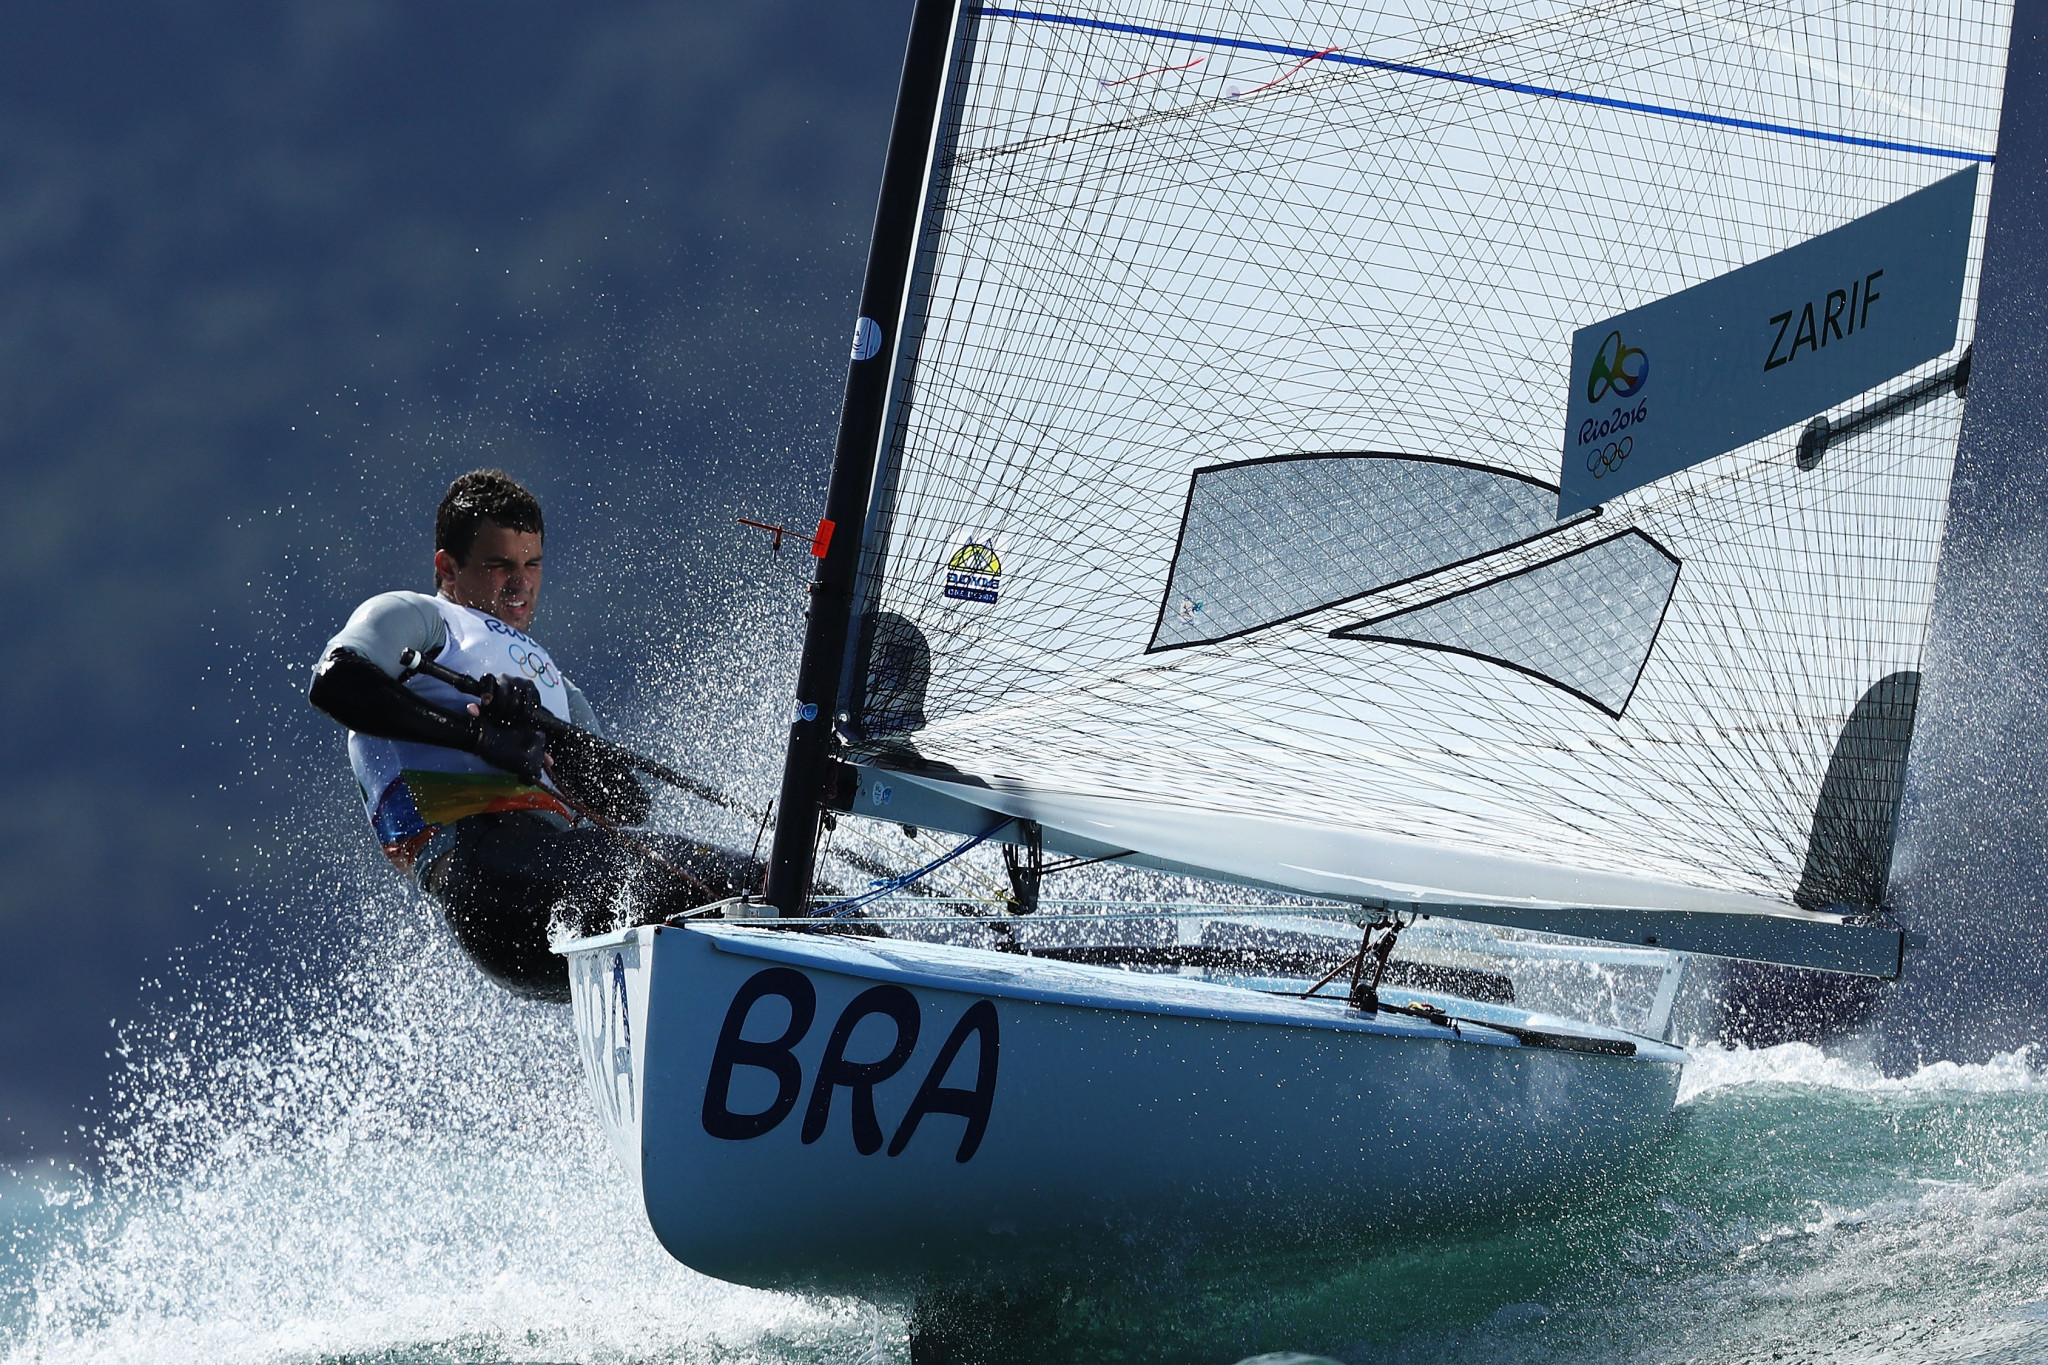 Zarif's final flourish earns Finn gold on last day of Sailing World Cup Final at Marseille